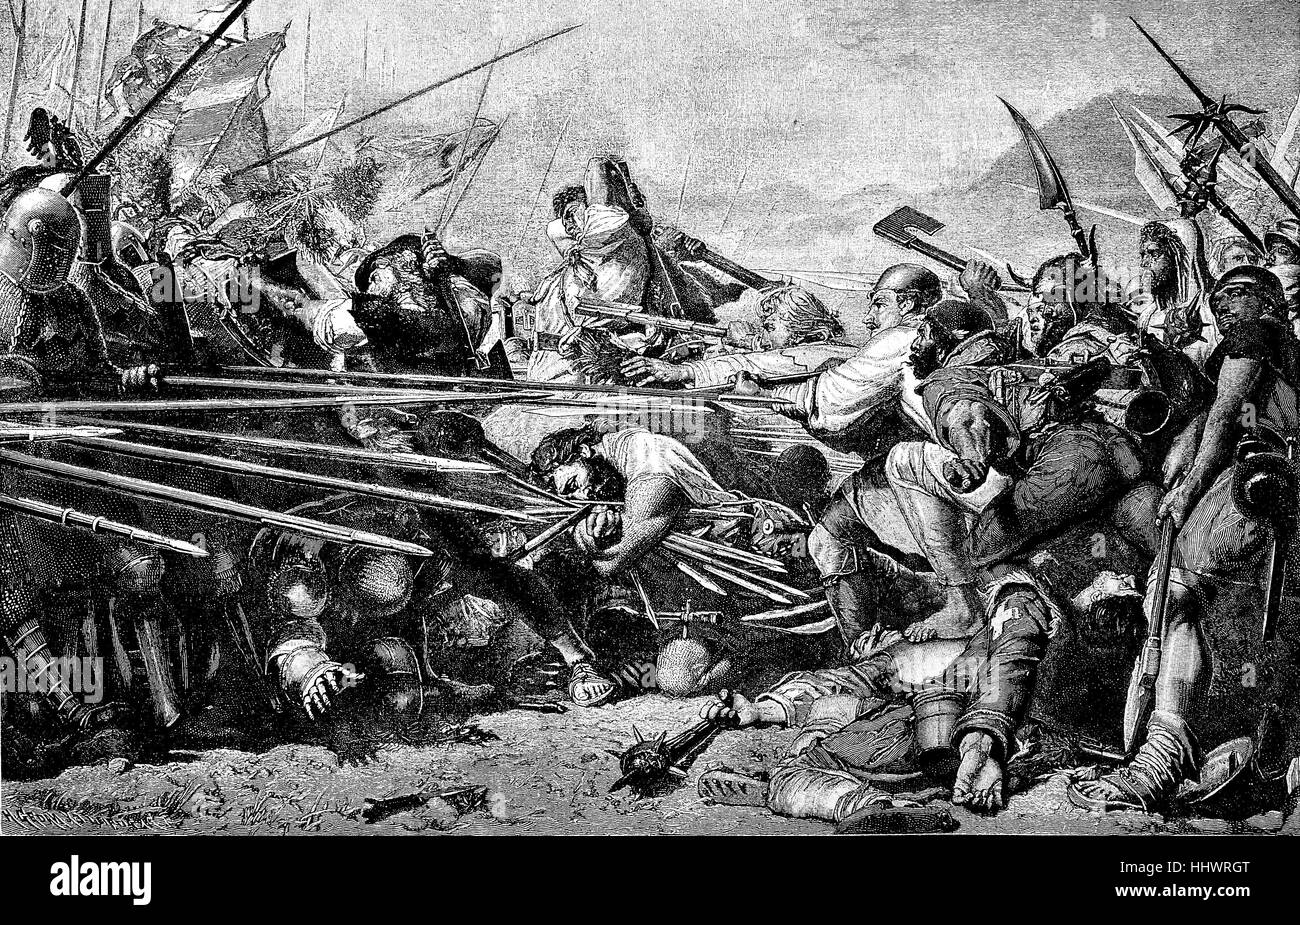 Battle of Sempach, conflict between the Habsburgs and the Swiss during the Swiss Habsburg War, Canton Lucerne, Switzerland, - Stock Image